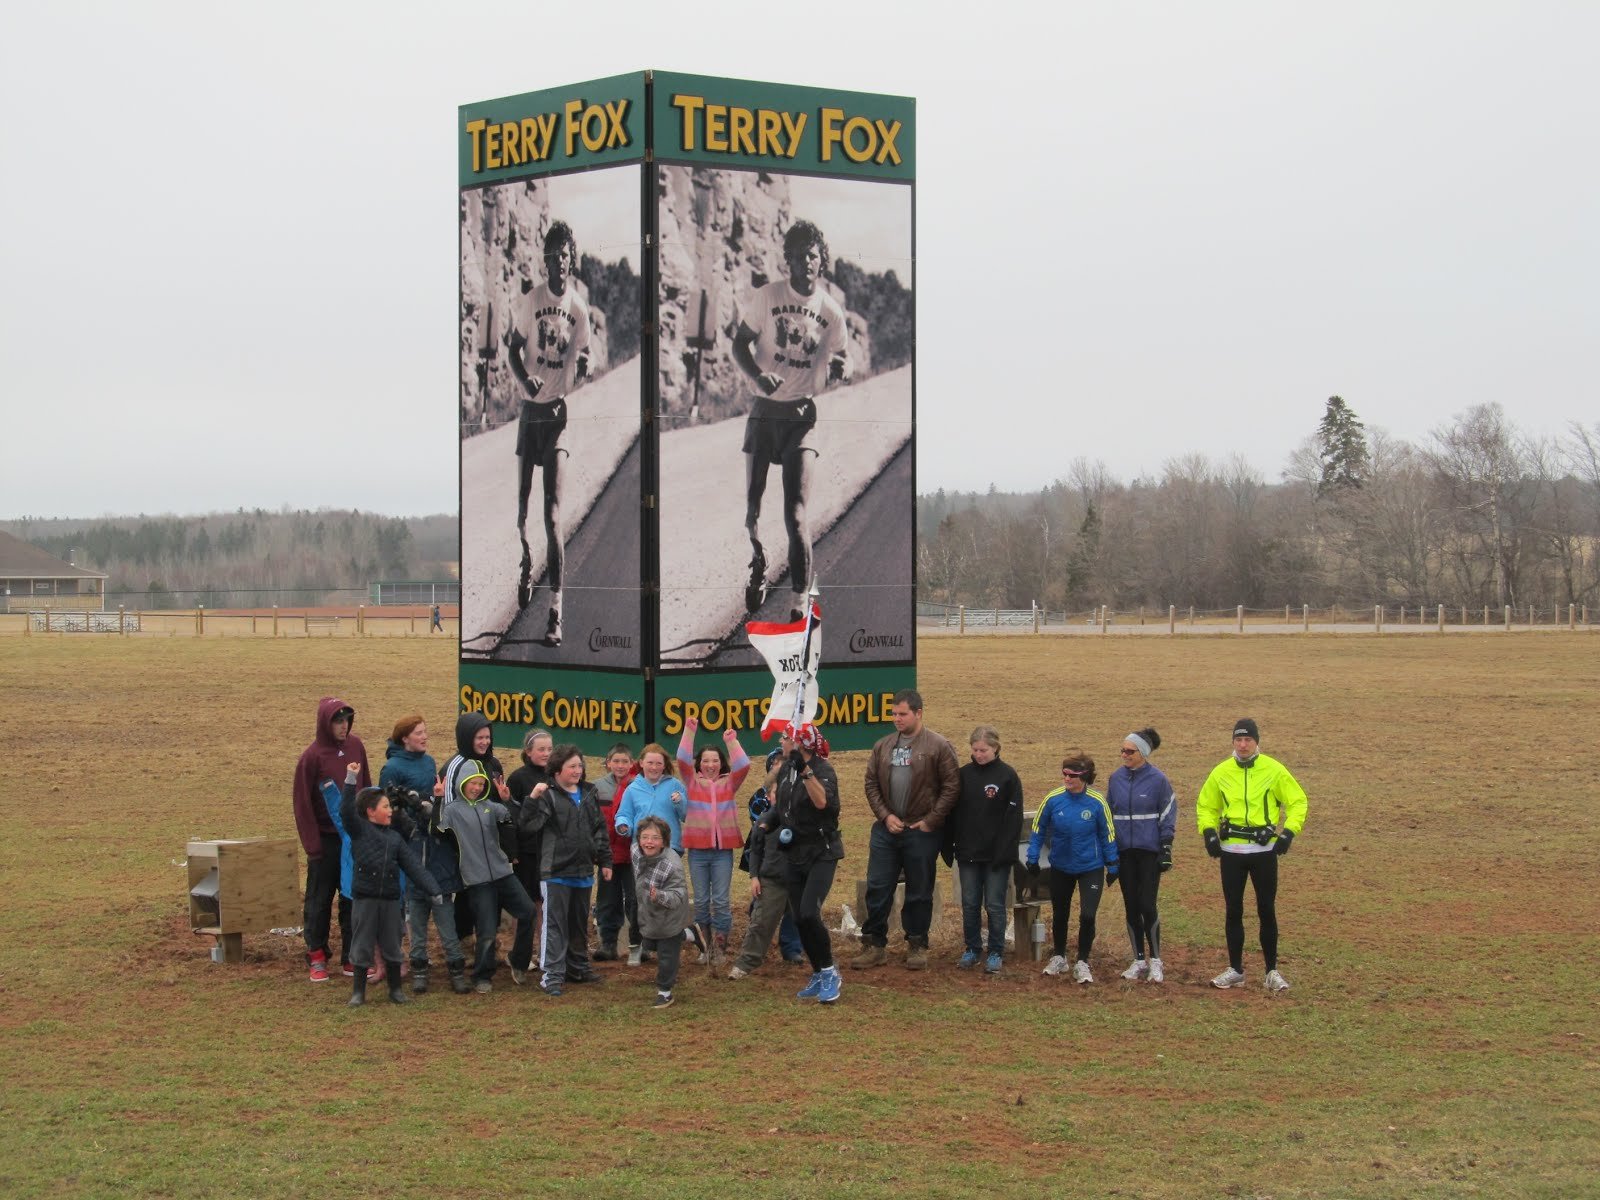 Terry Fox Running Shoes